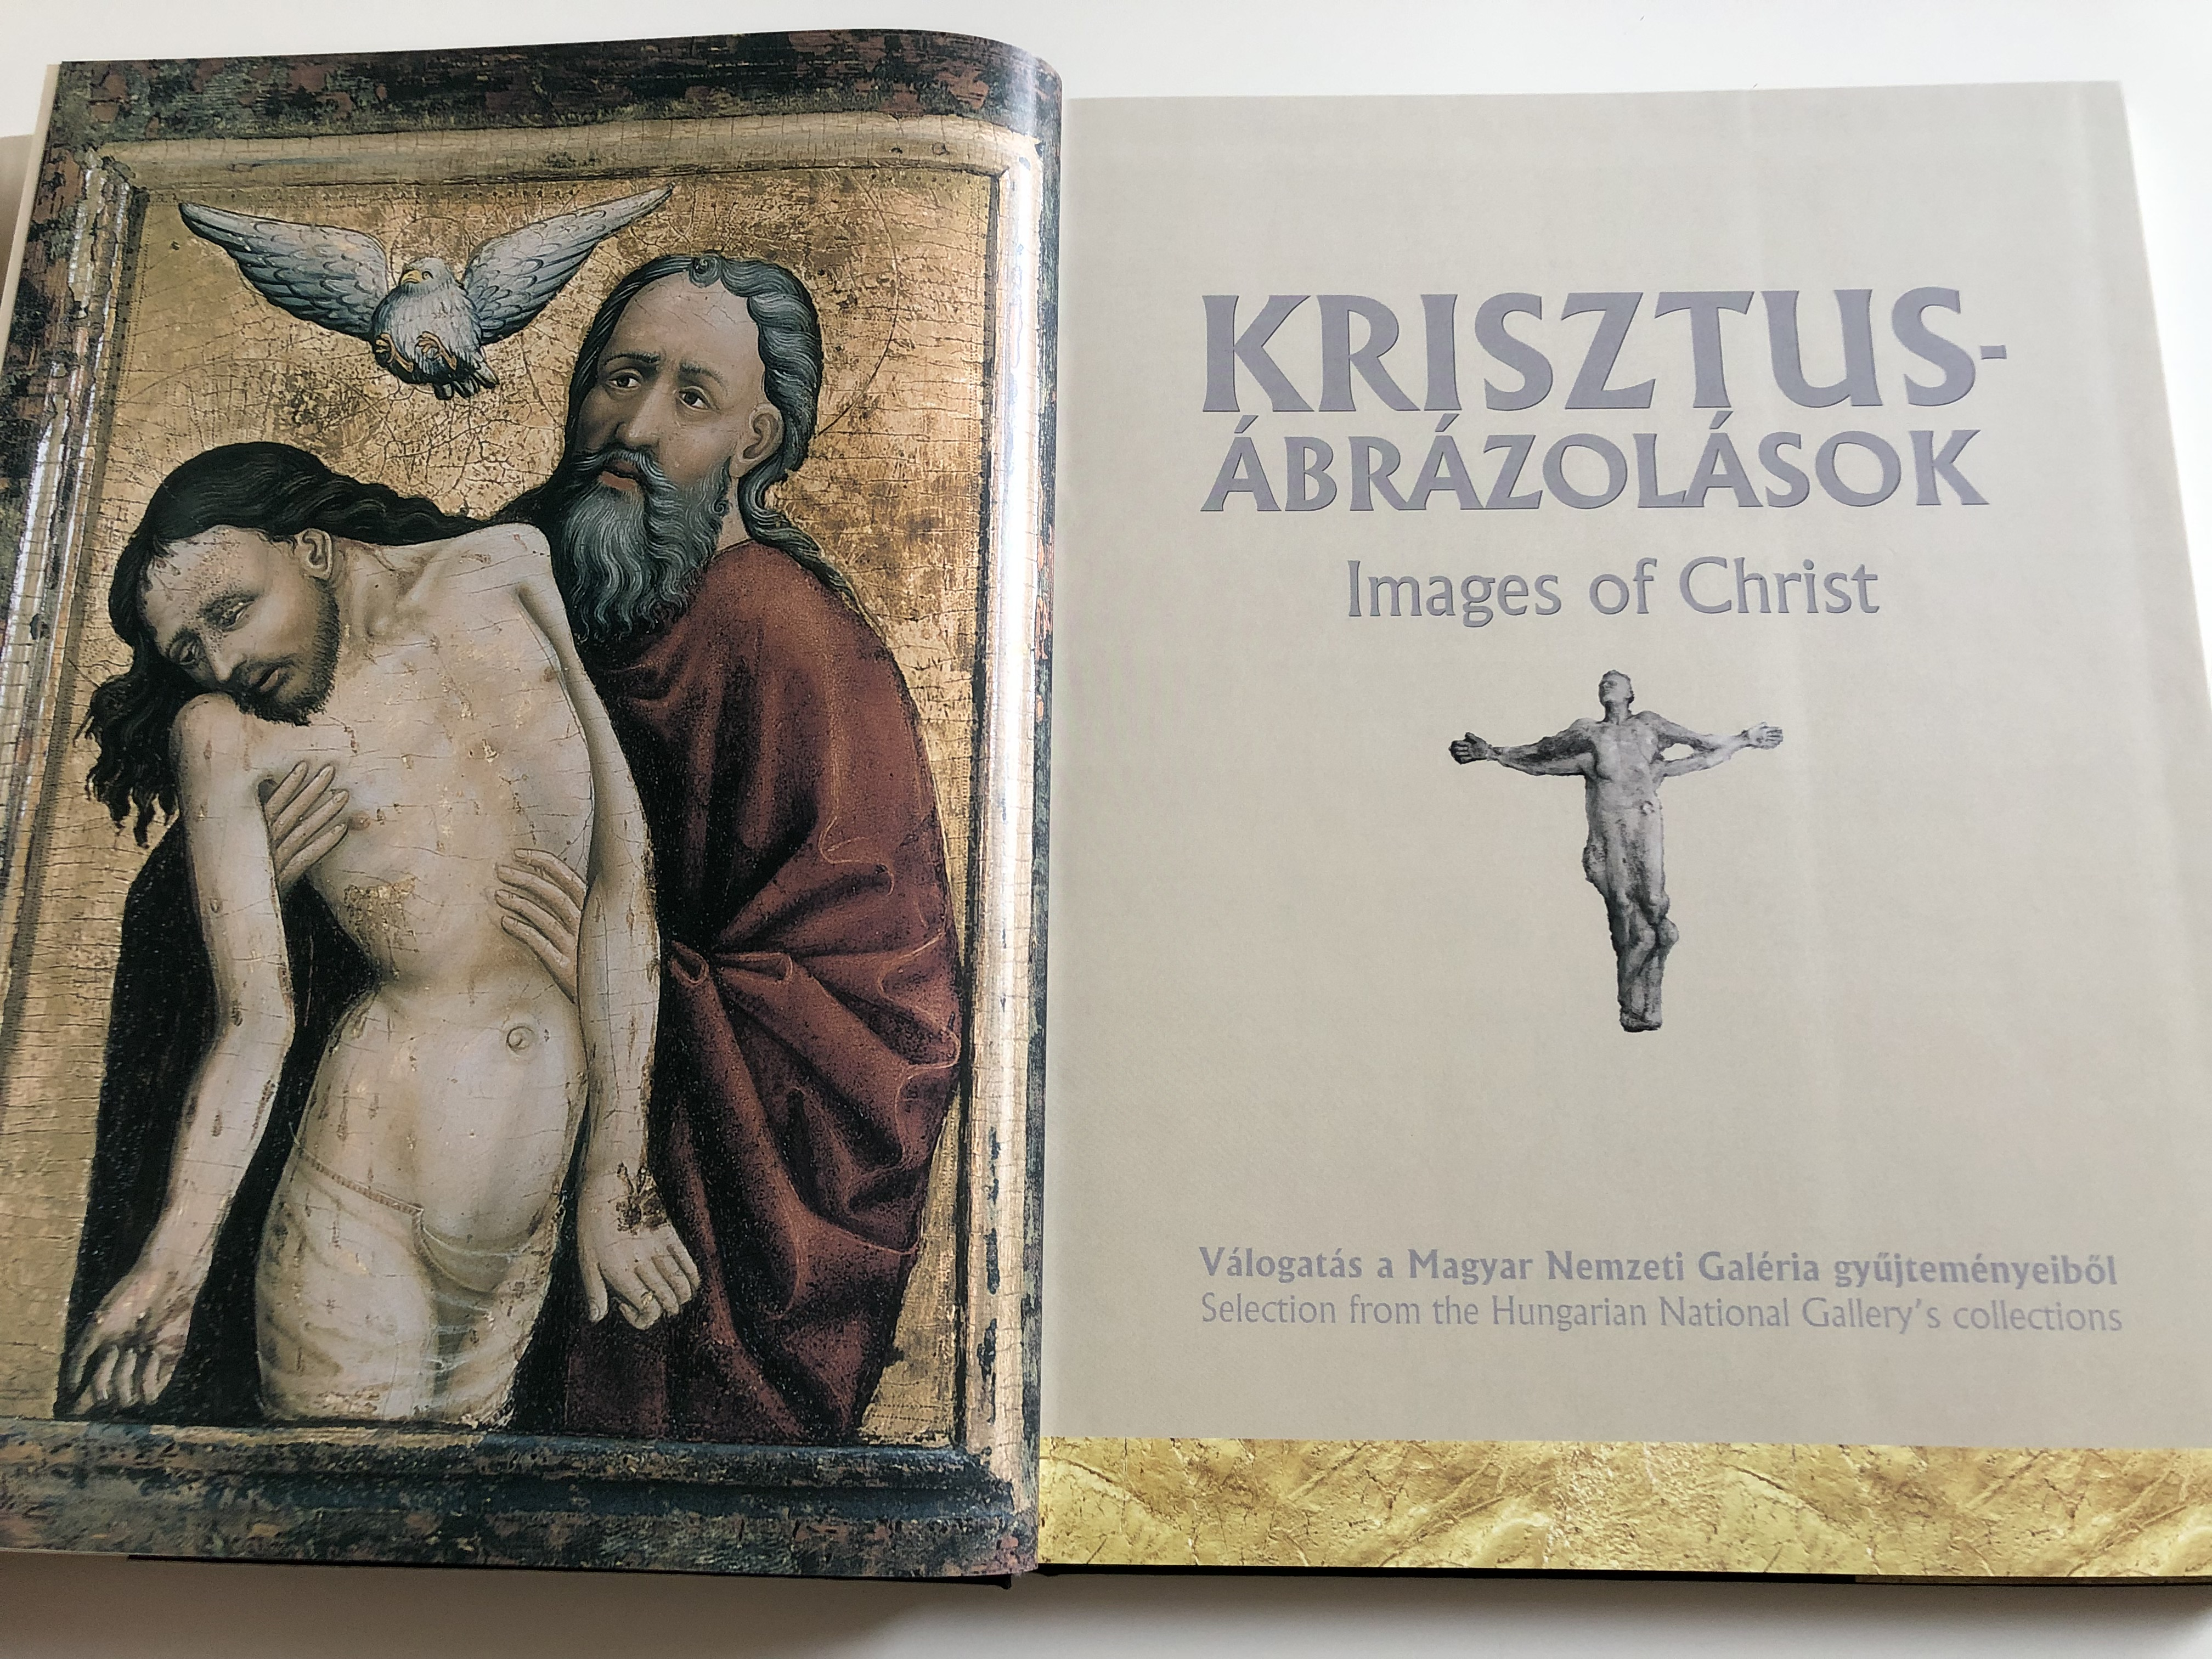 krisztus-br-zol-sok-images-of-christ-v-logat-s-a-magyar-nemzeti-gal-ria-gy-jtem-nyeib-l-selection-from-the-hungarian-national-gallery-s-collections-hardcover-2004-3-.jpg